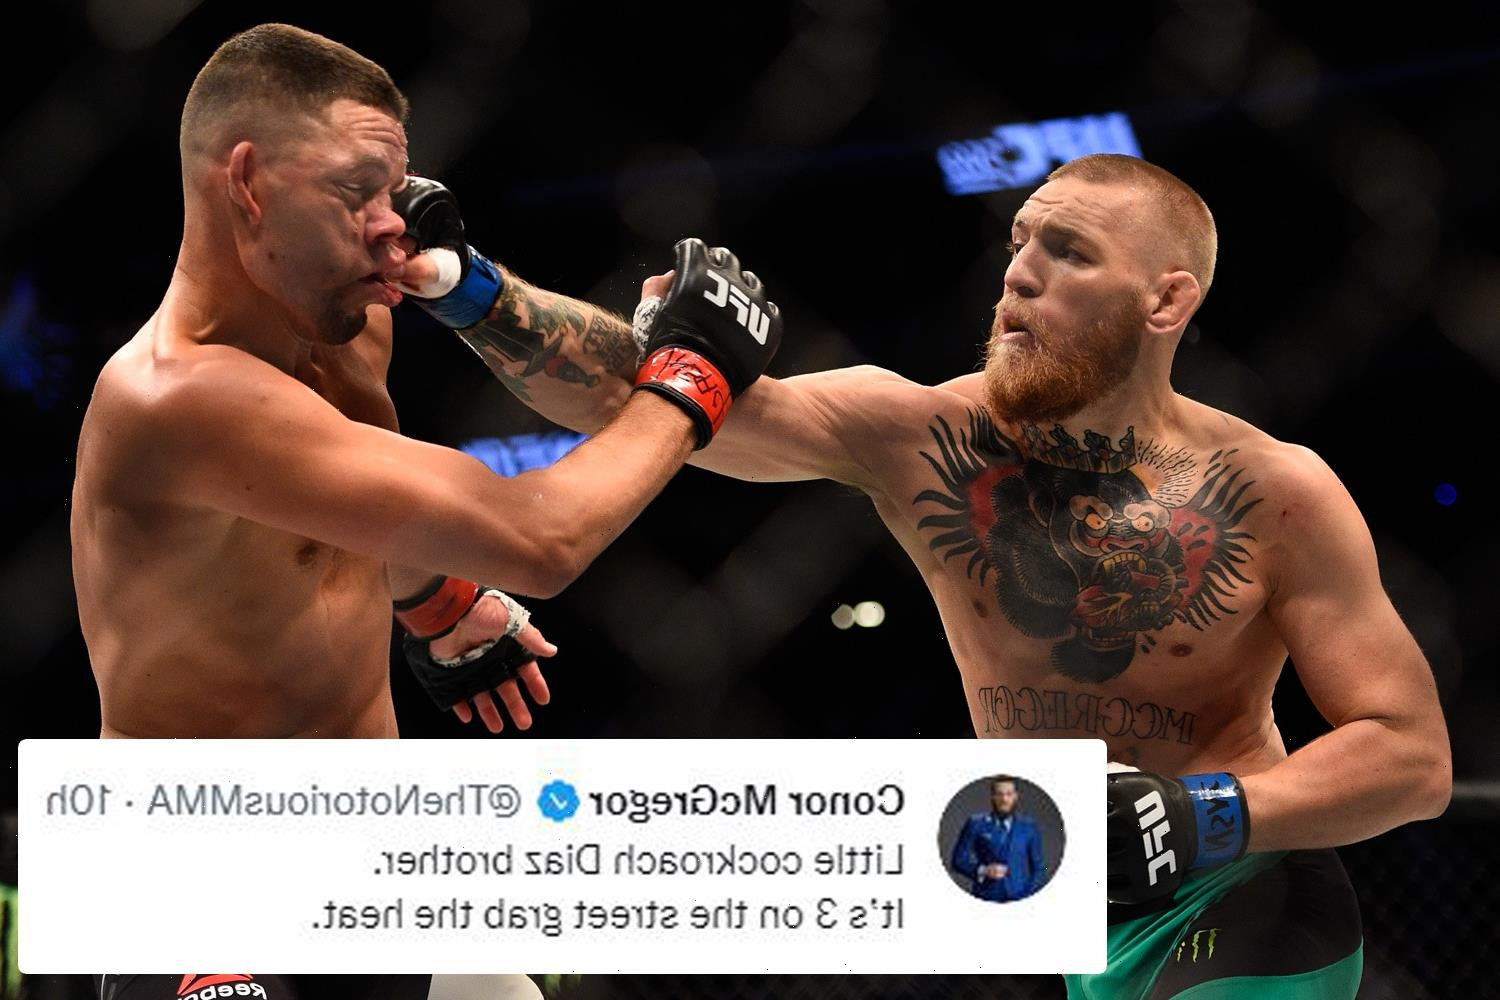 Conor McGregor brands Nate Diaz a 'cockroach' and brags about his UFC bloodbath win over rival